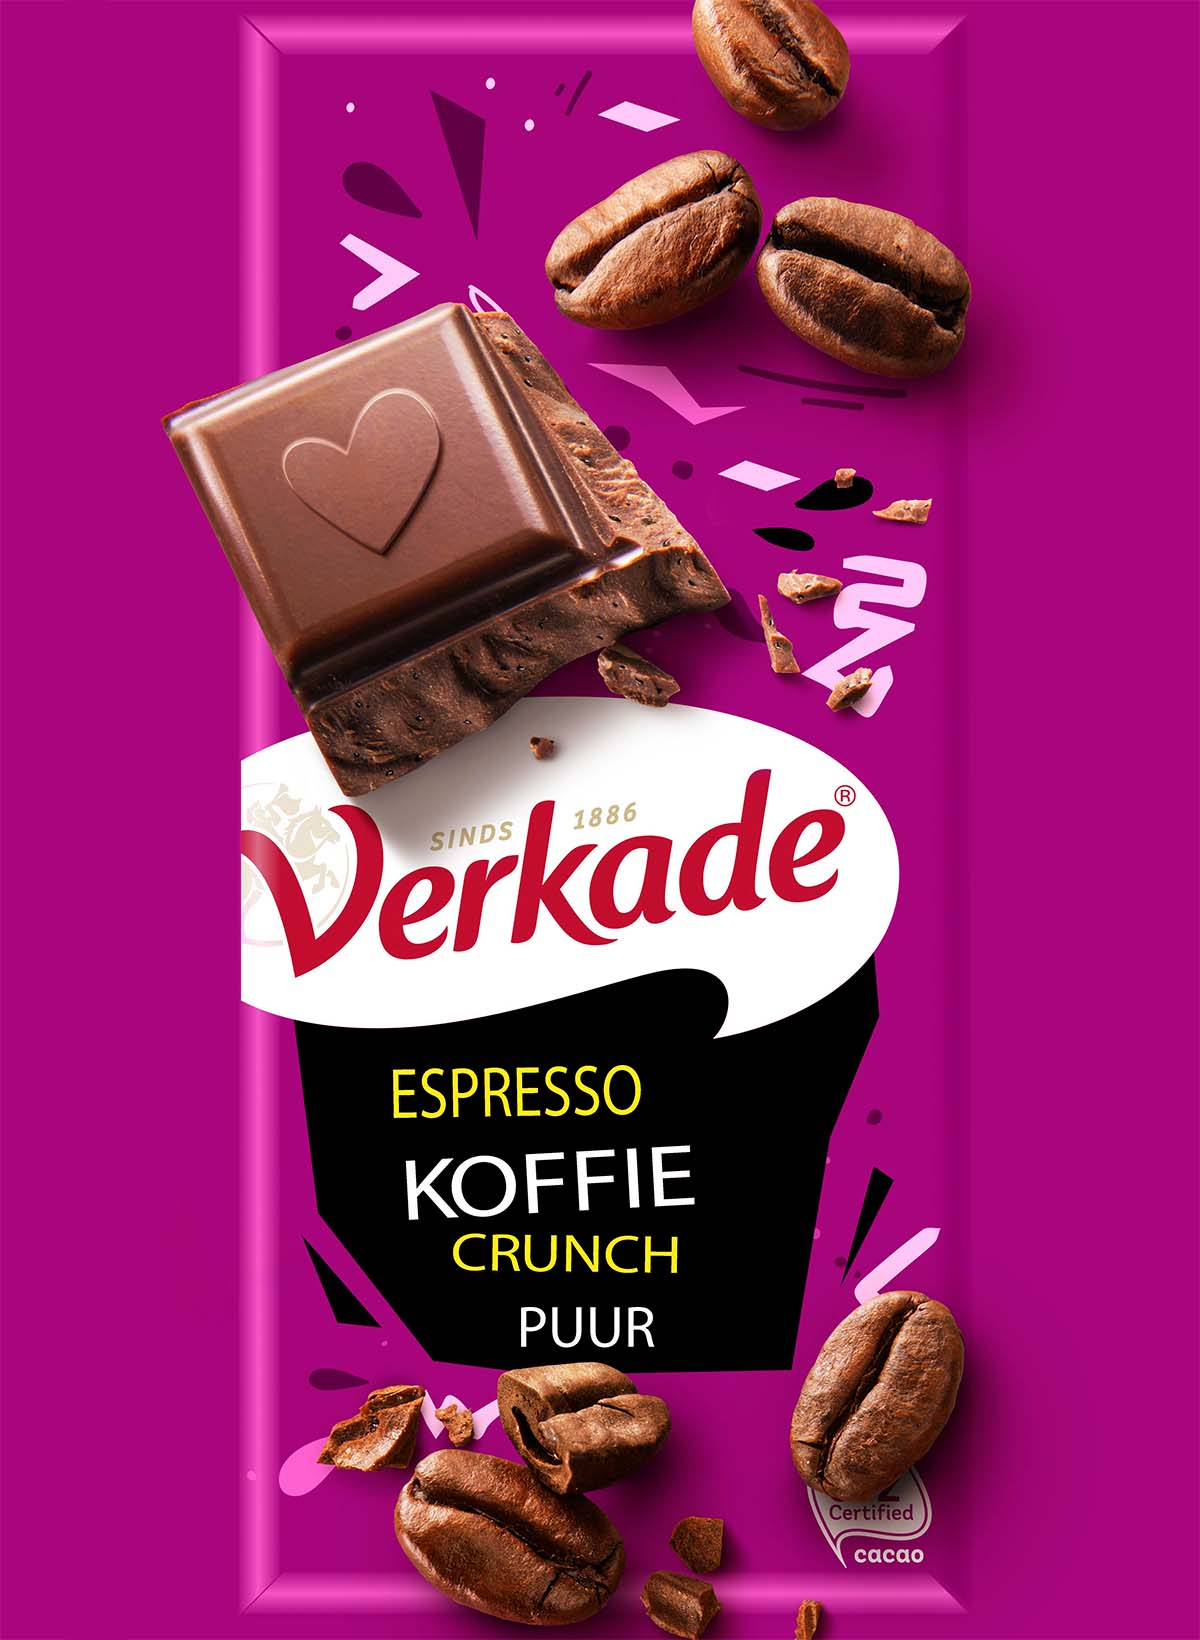 Packaging photography of Verkade's Espresso coffee crunch pure chocolate made by Studio_m Photography Amsterdam